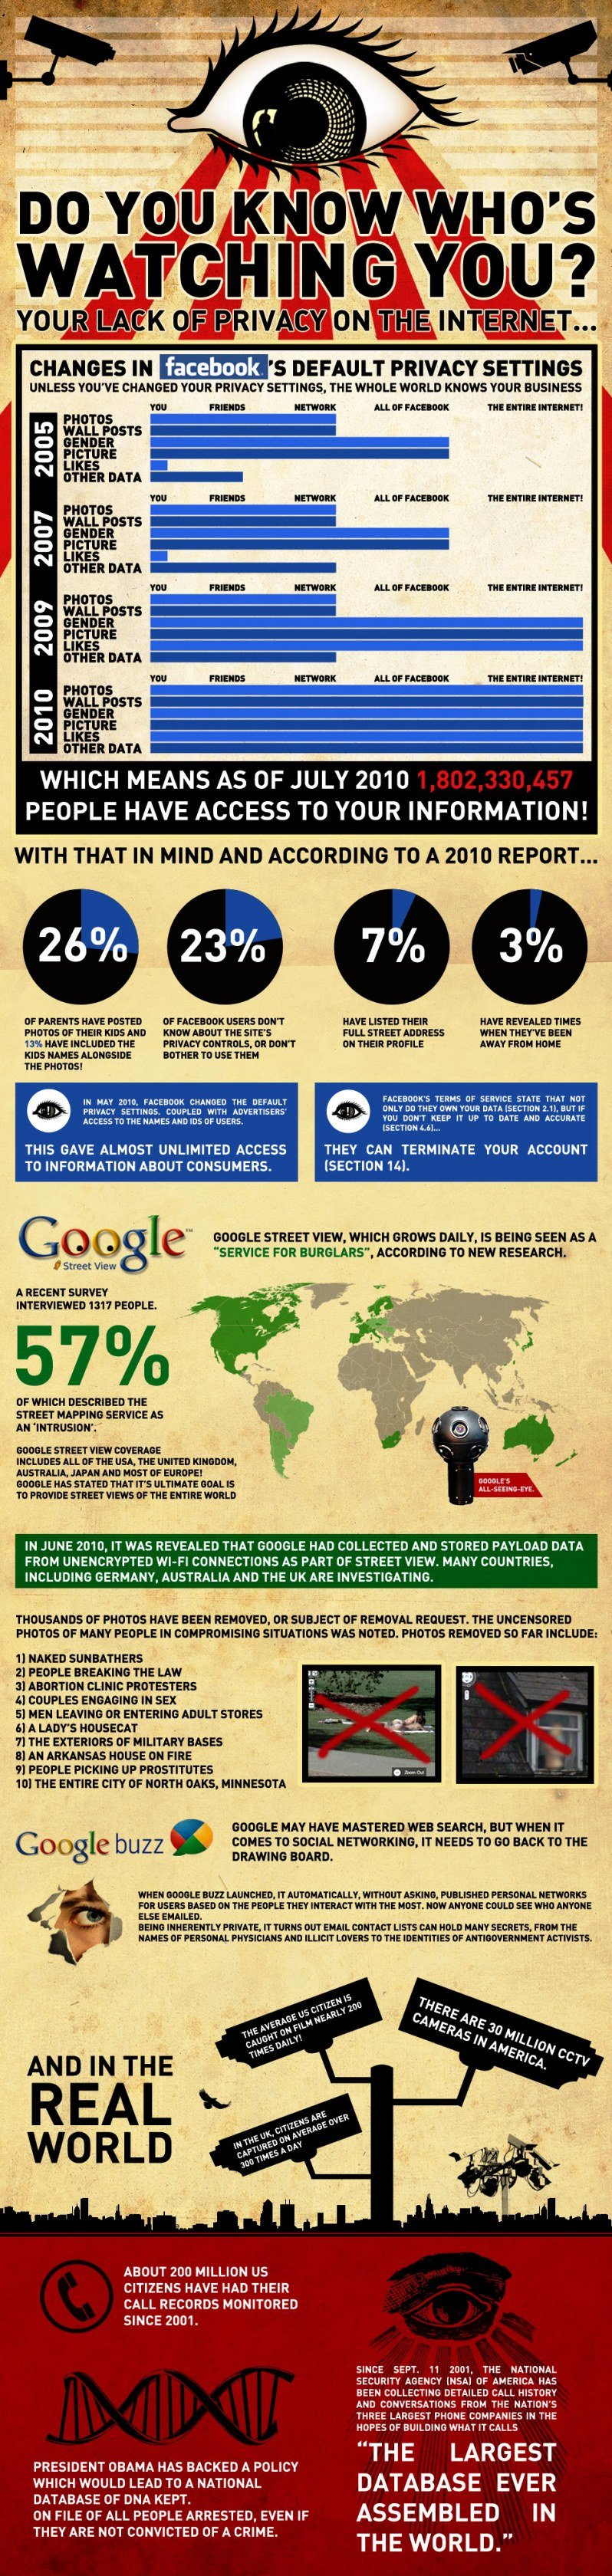 did you know who is watching you #infographic